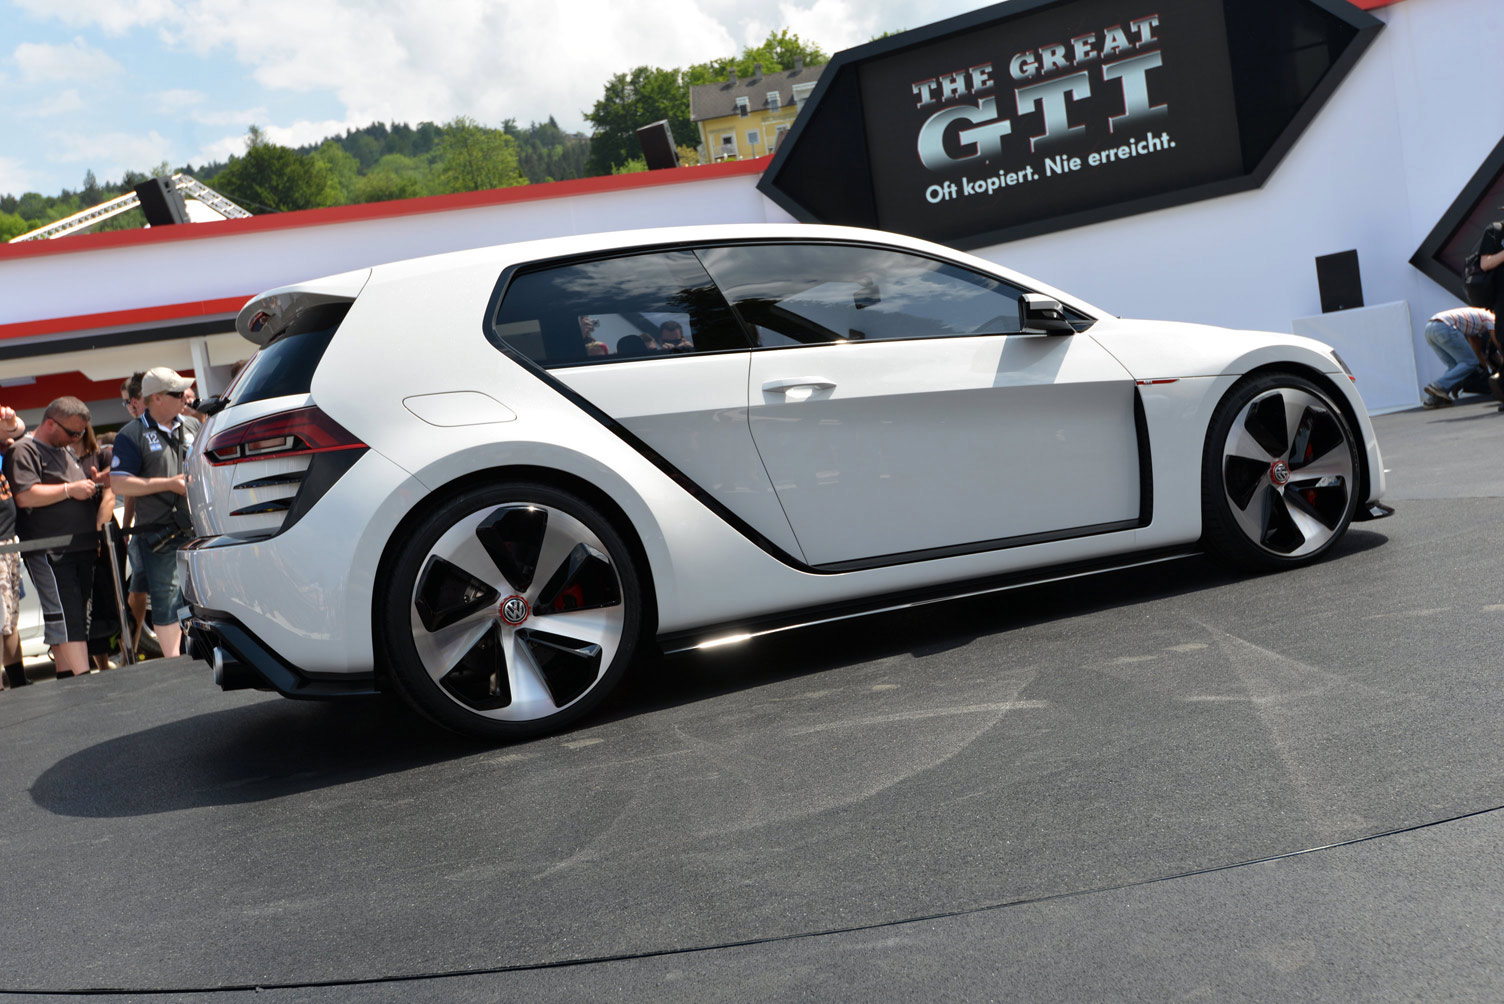 volkswagen-design-vision-gti-worthersee-034